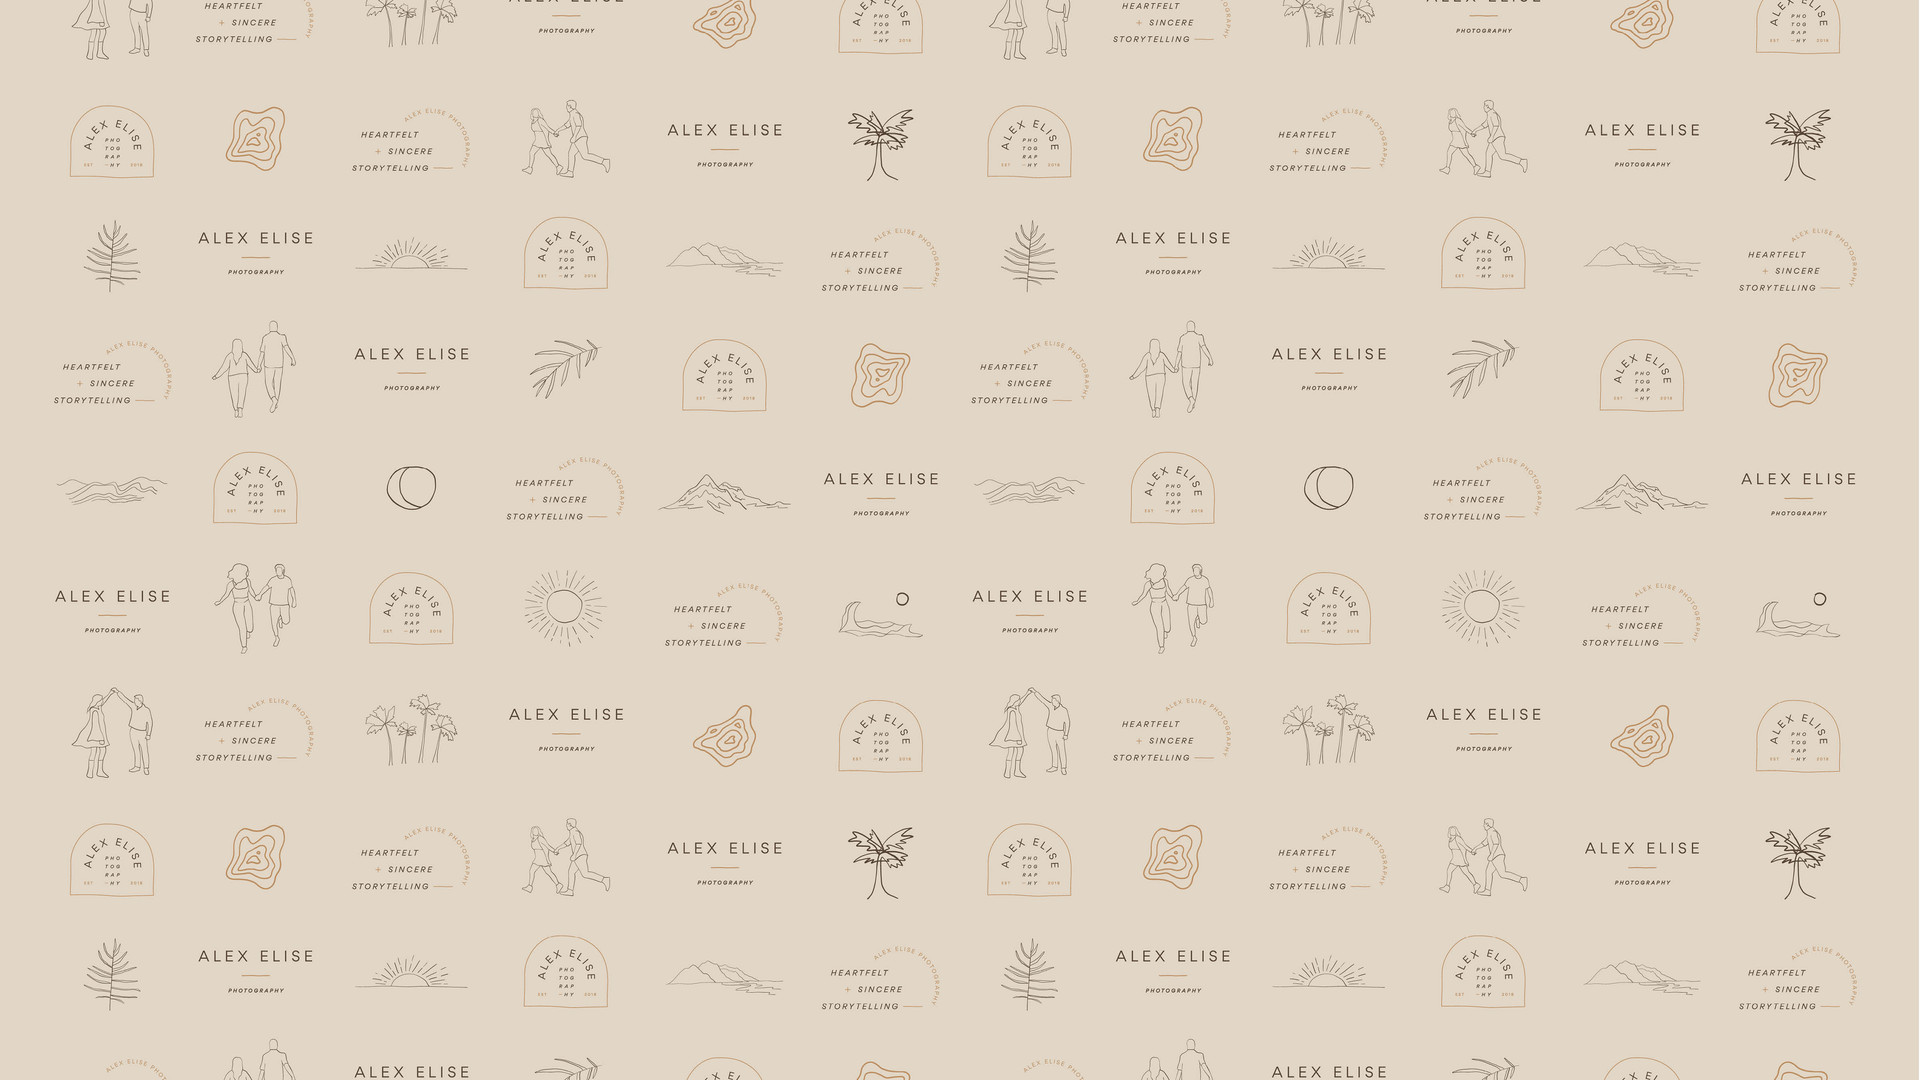 icon design and illustrations for photographer